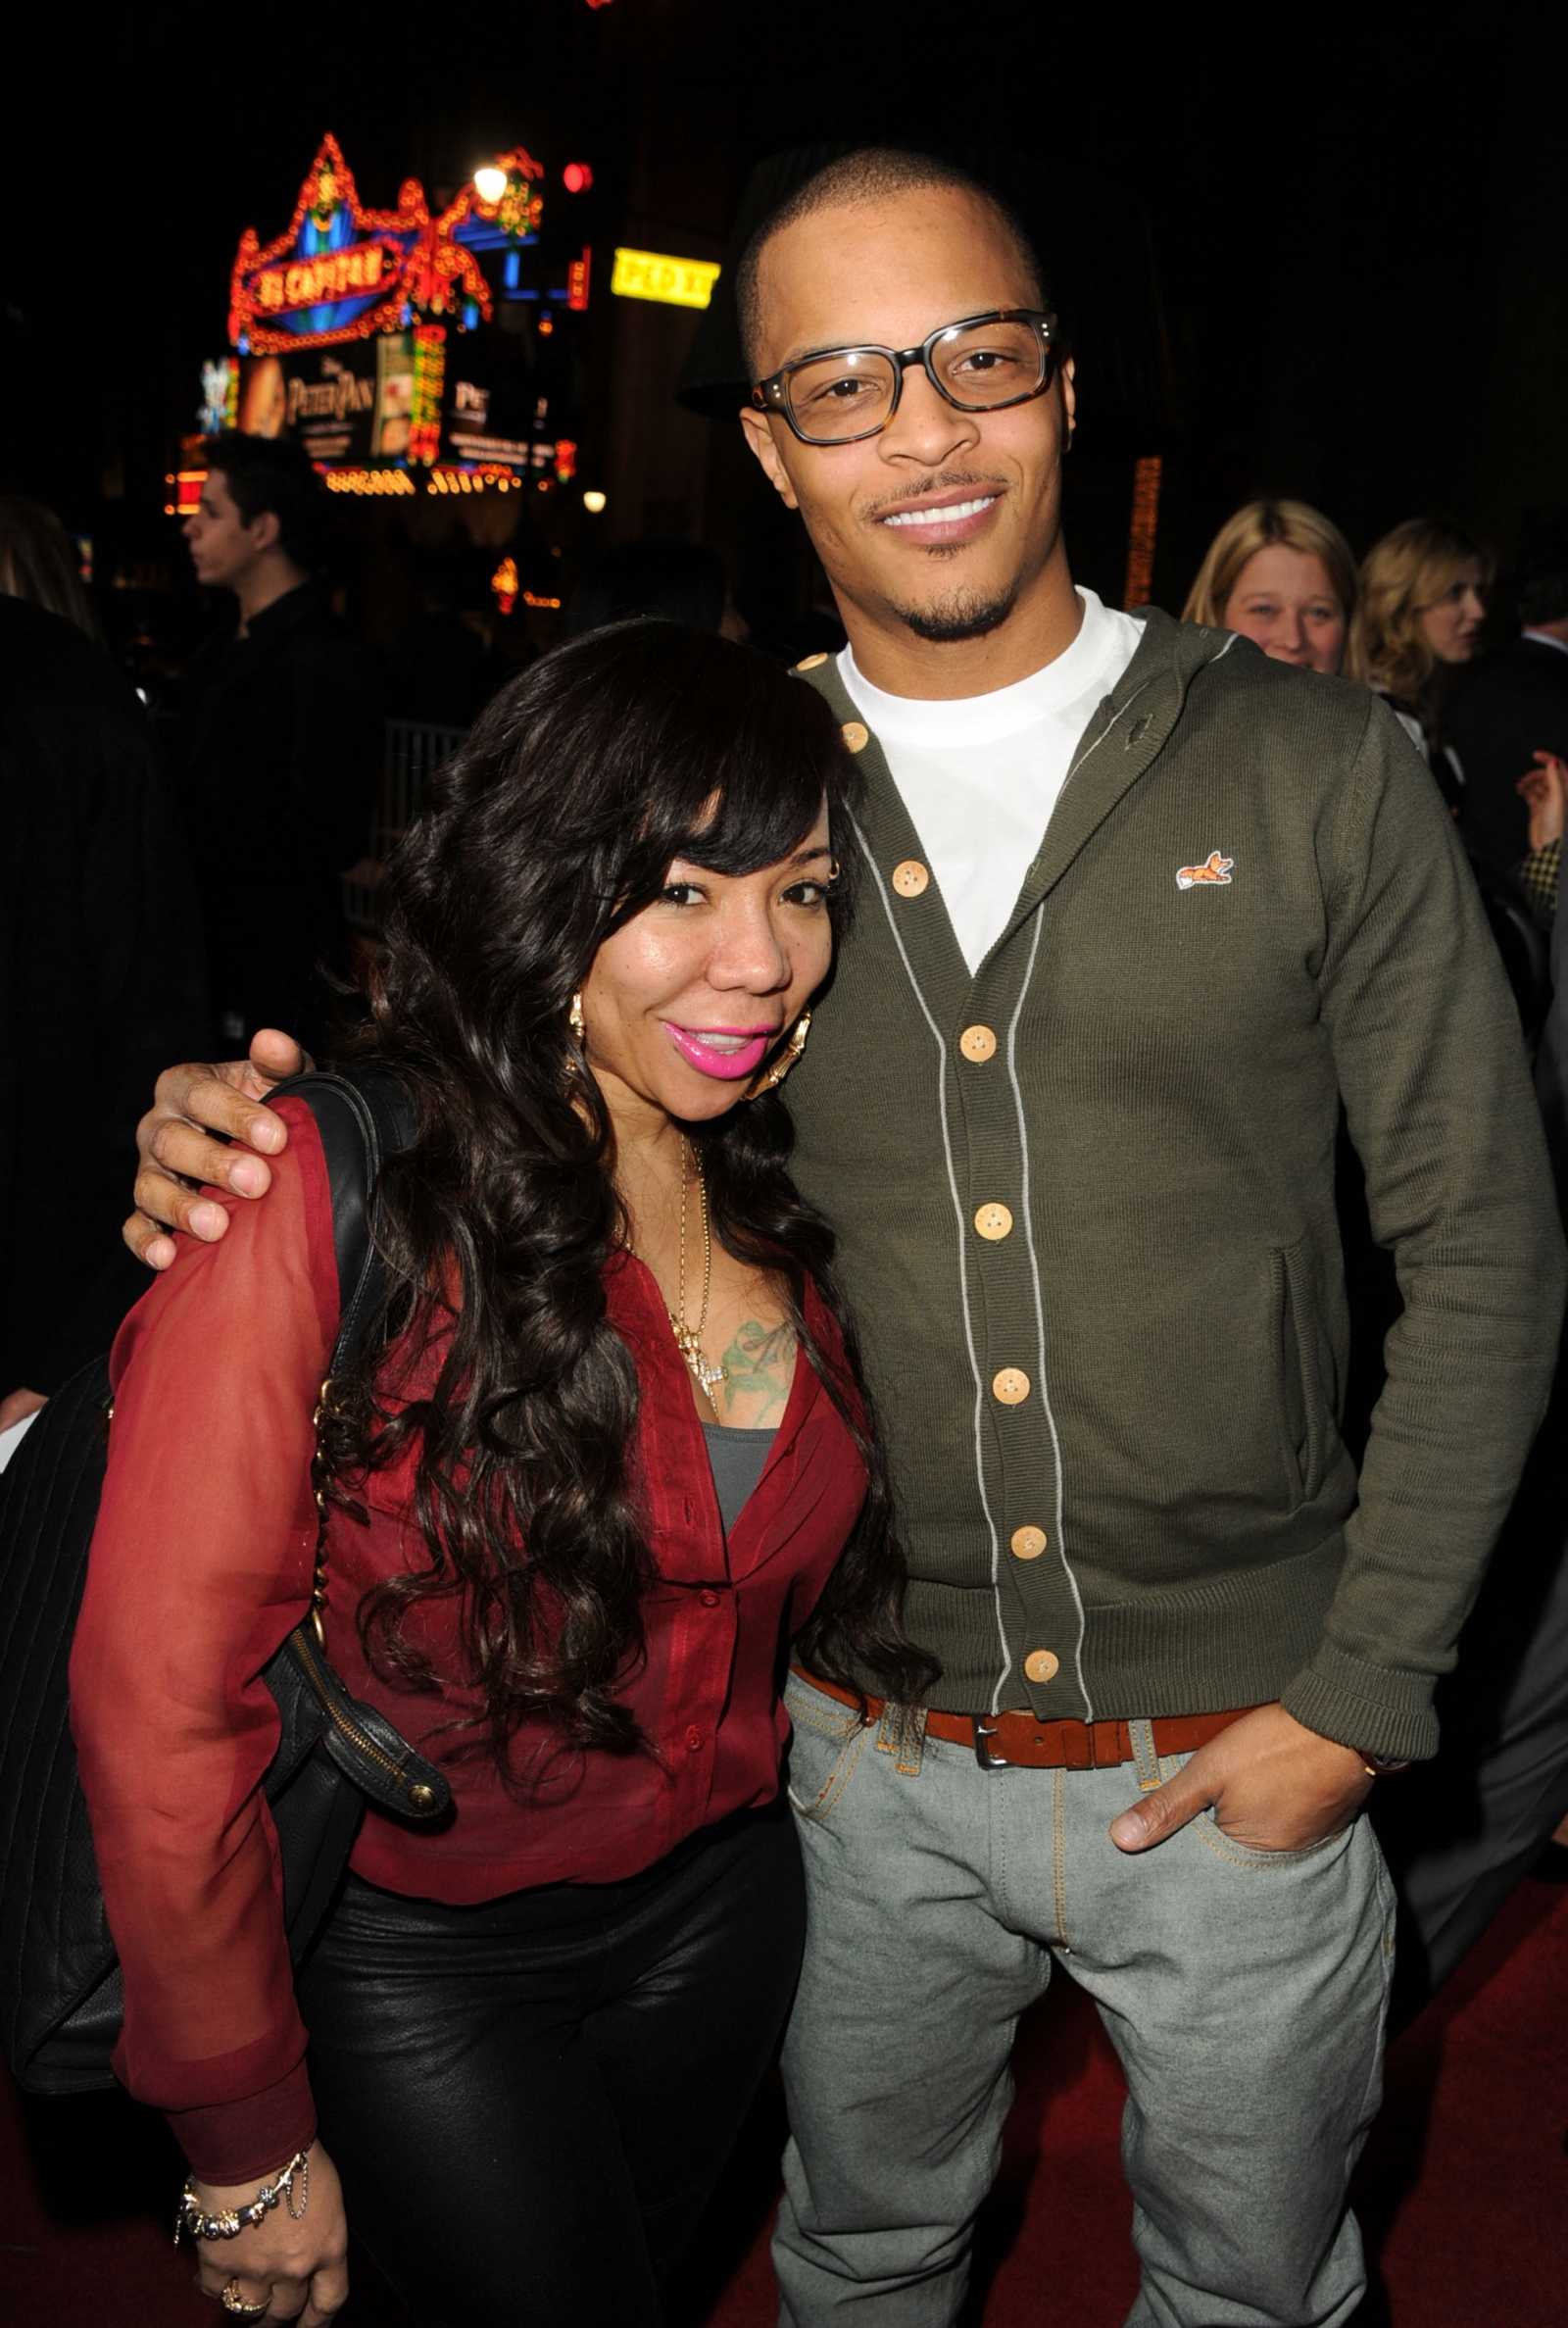 ti and tinys divorce is back as rappers photos with nfl